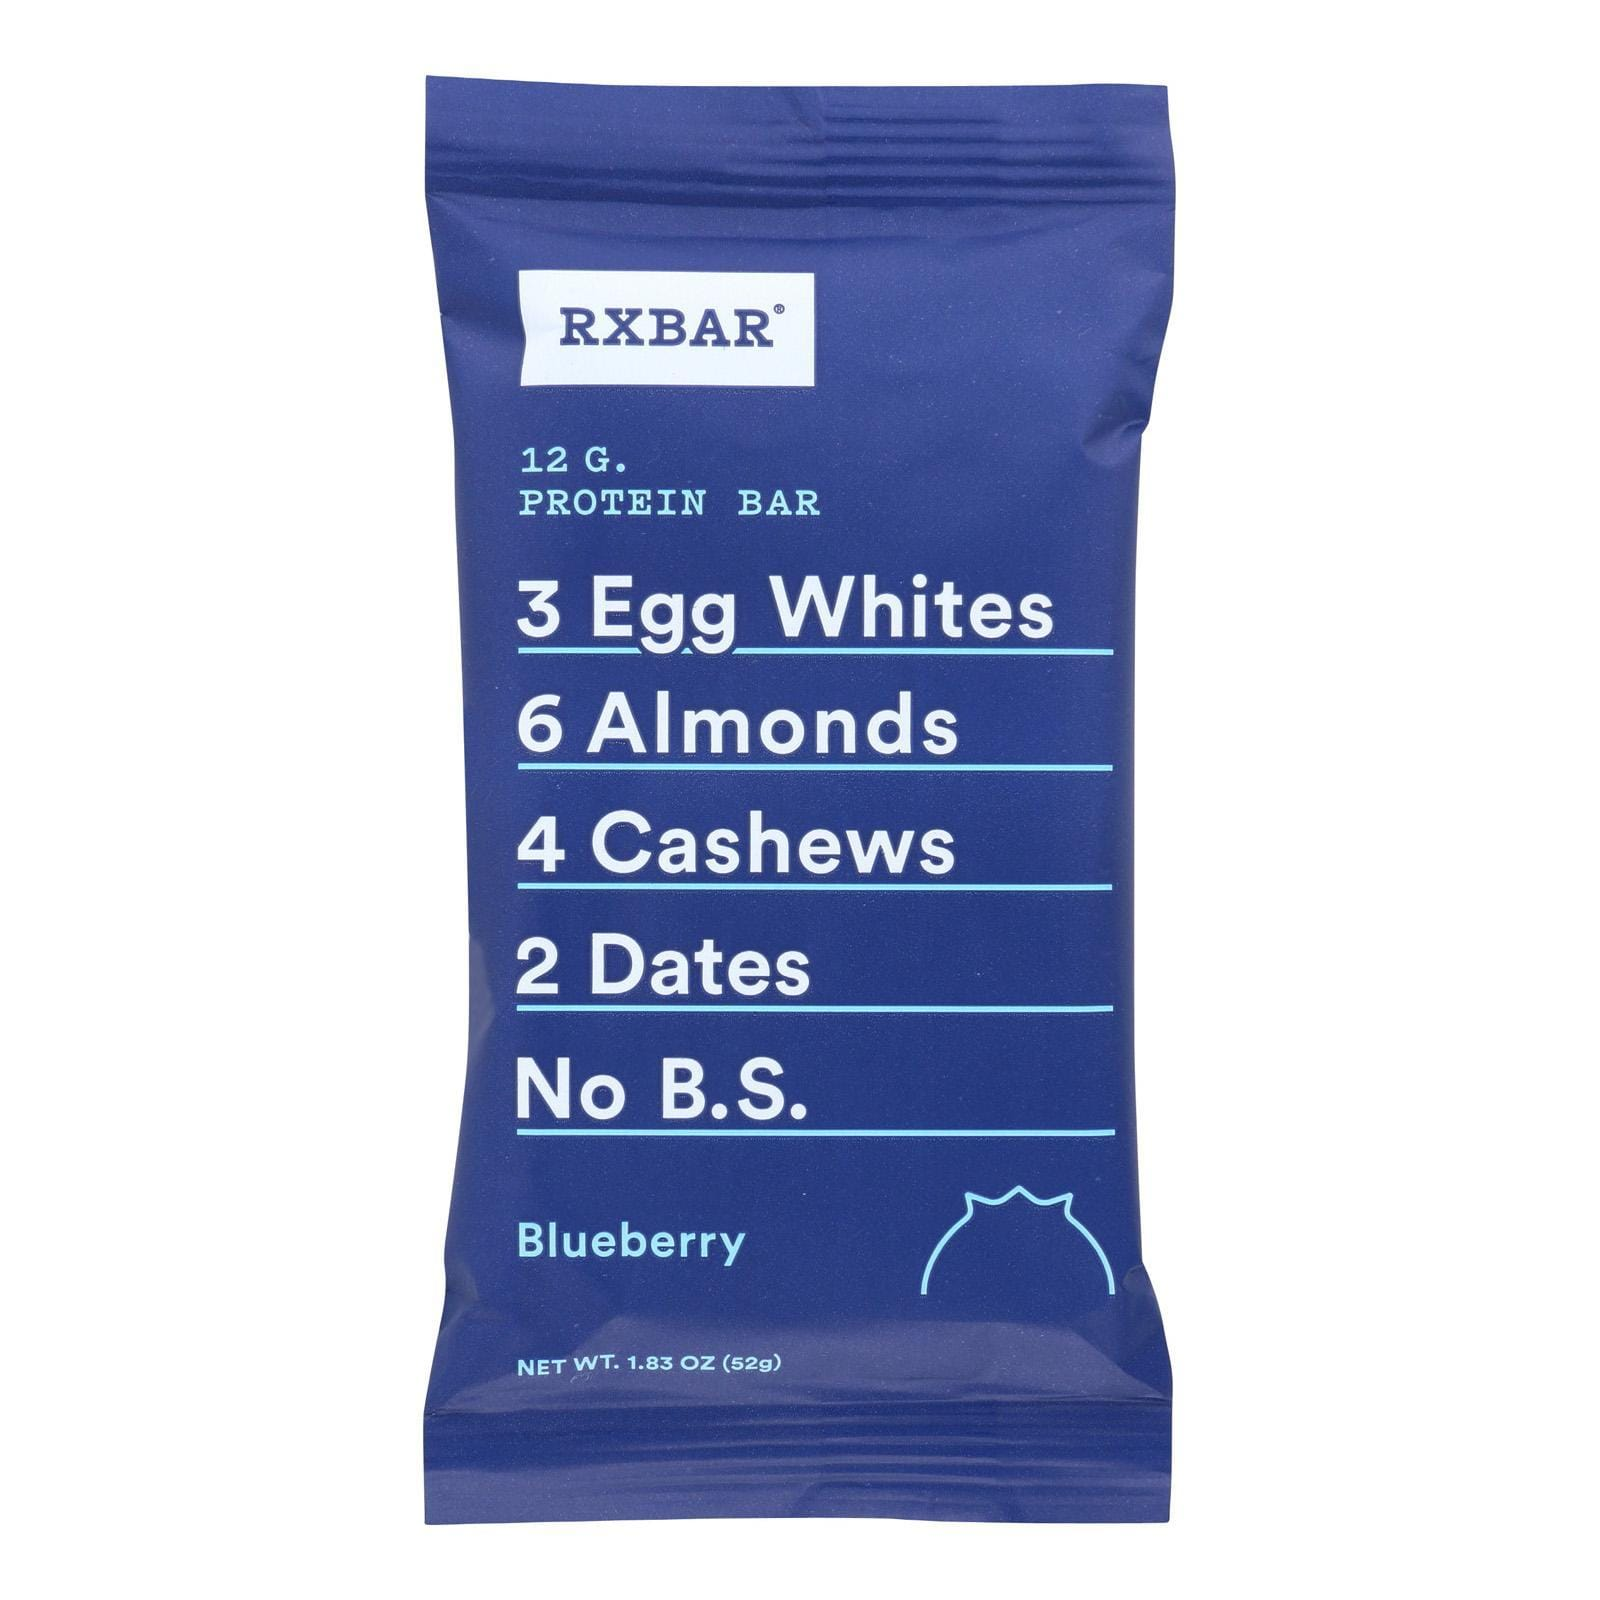 Rxbar Protein Bars, Snacks & Powders Rxbar Bar - Protein - Blueberry - 1.83 Oz - Case Of 12